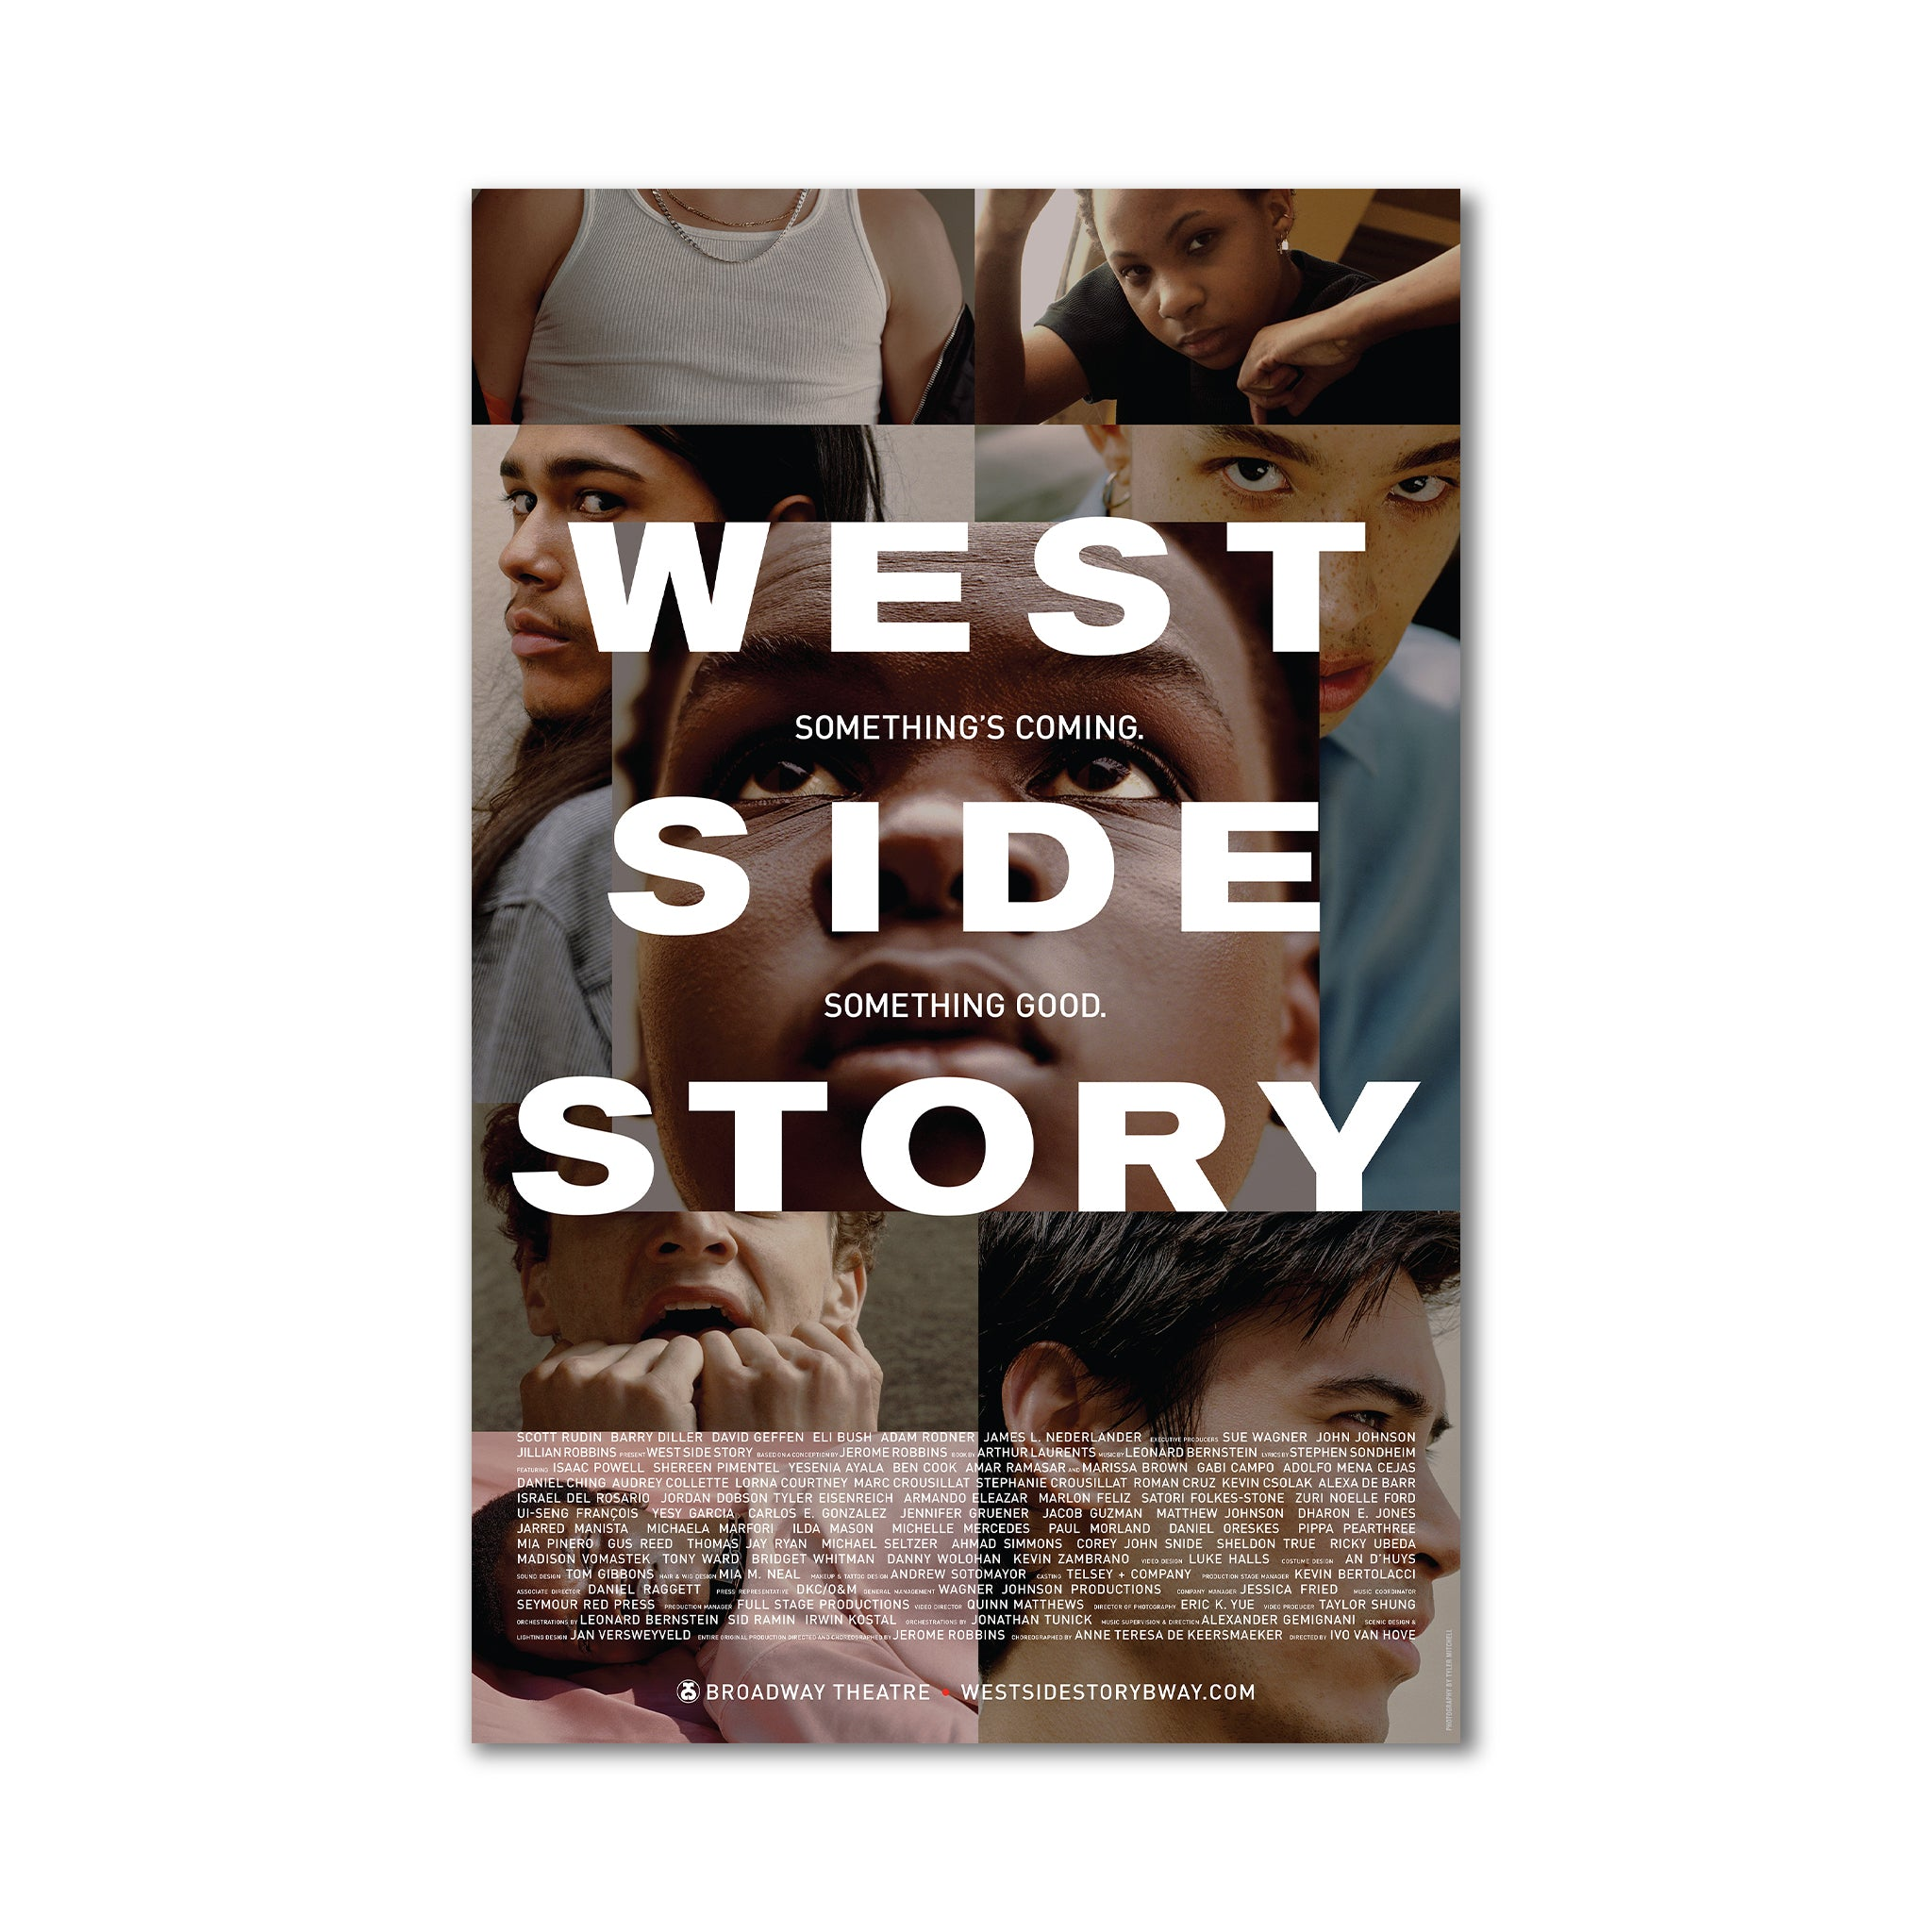 WEST SIDE STORY Windowcard Image